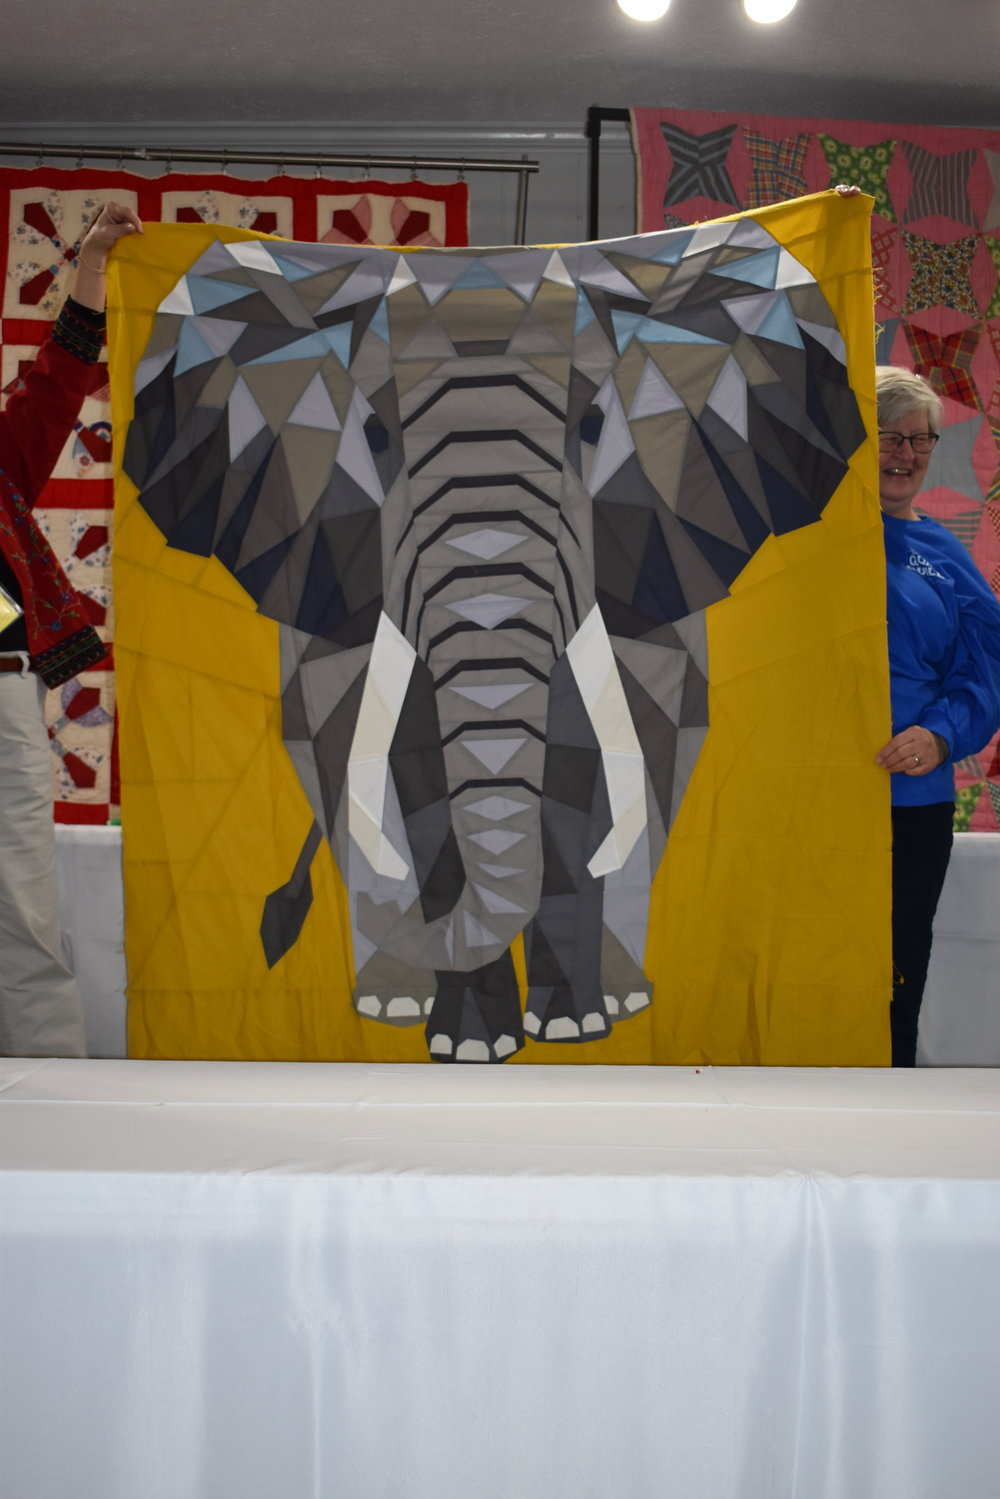 - Francine also showed her rendition of Violet Crafts' Elephant Abstraction Quilt.